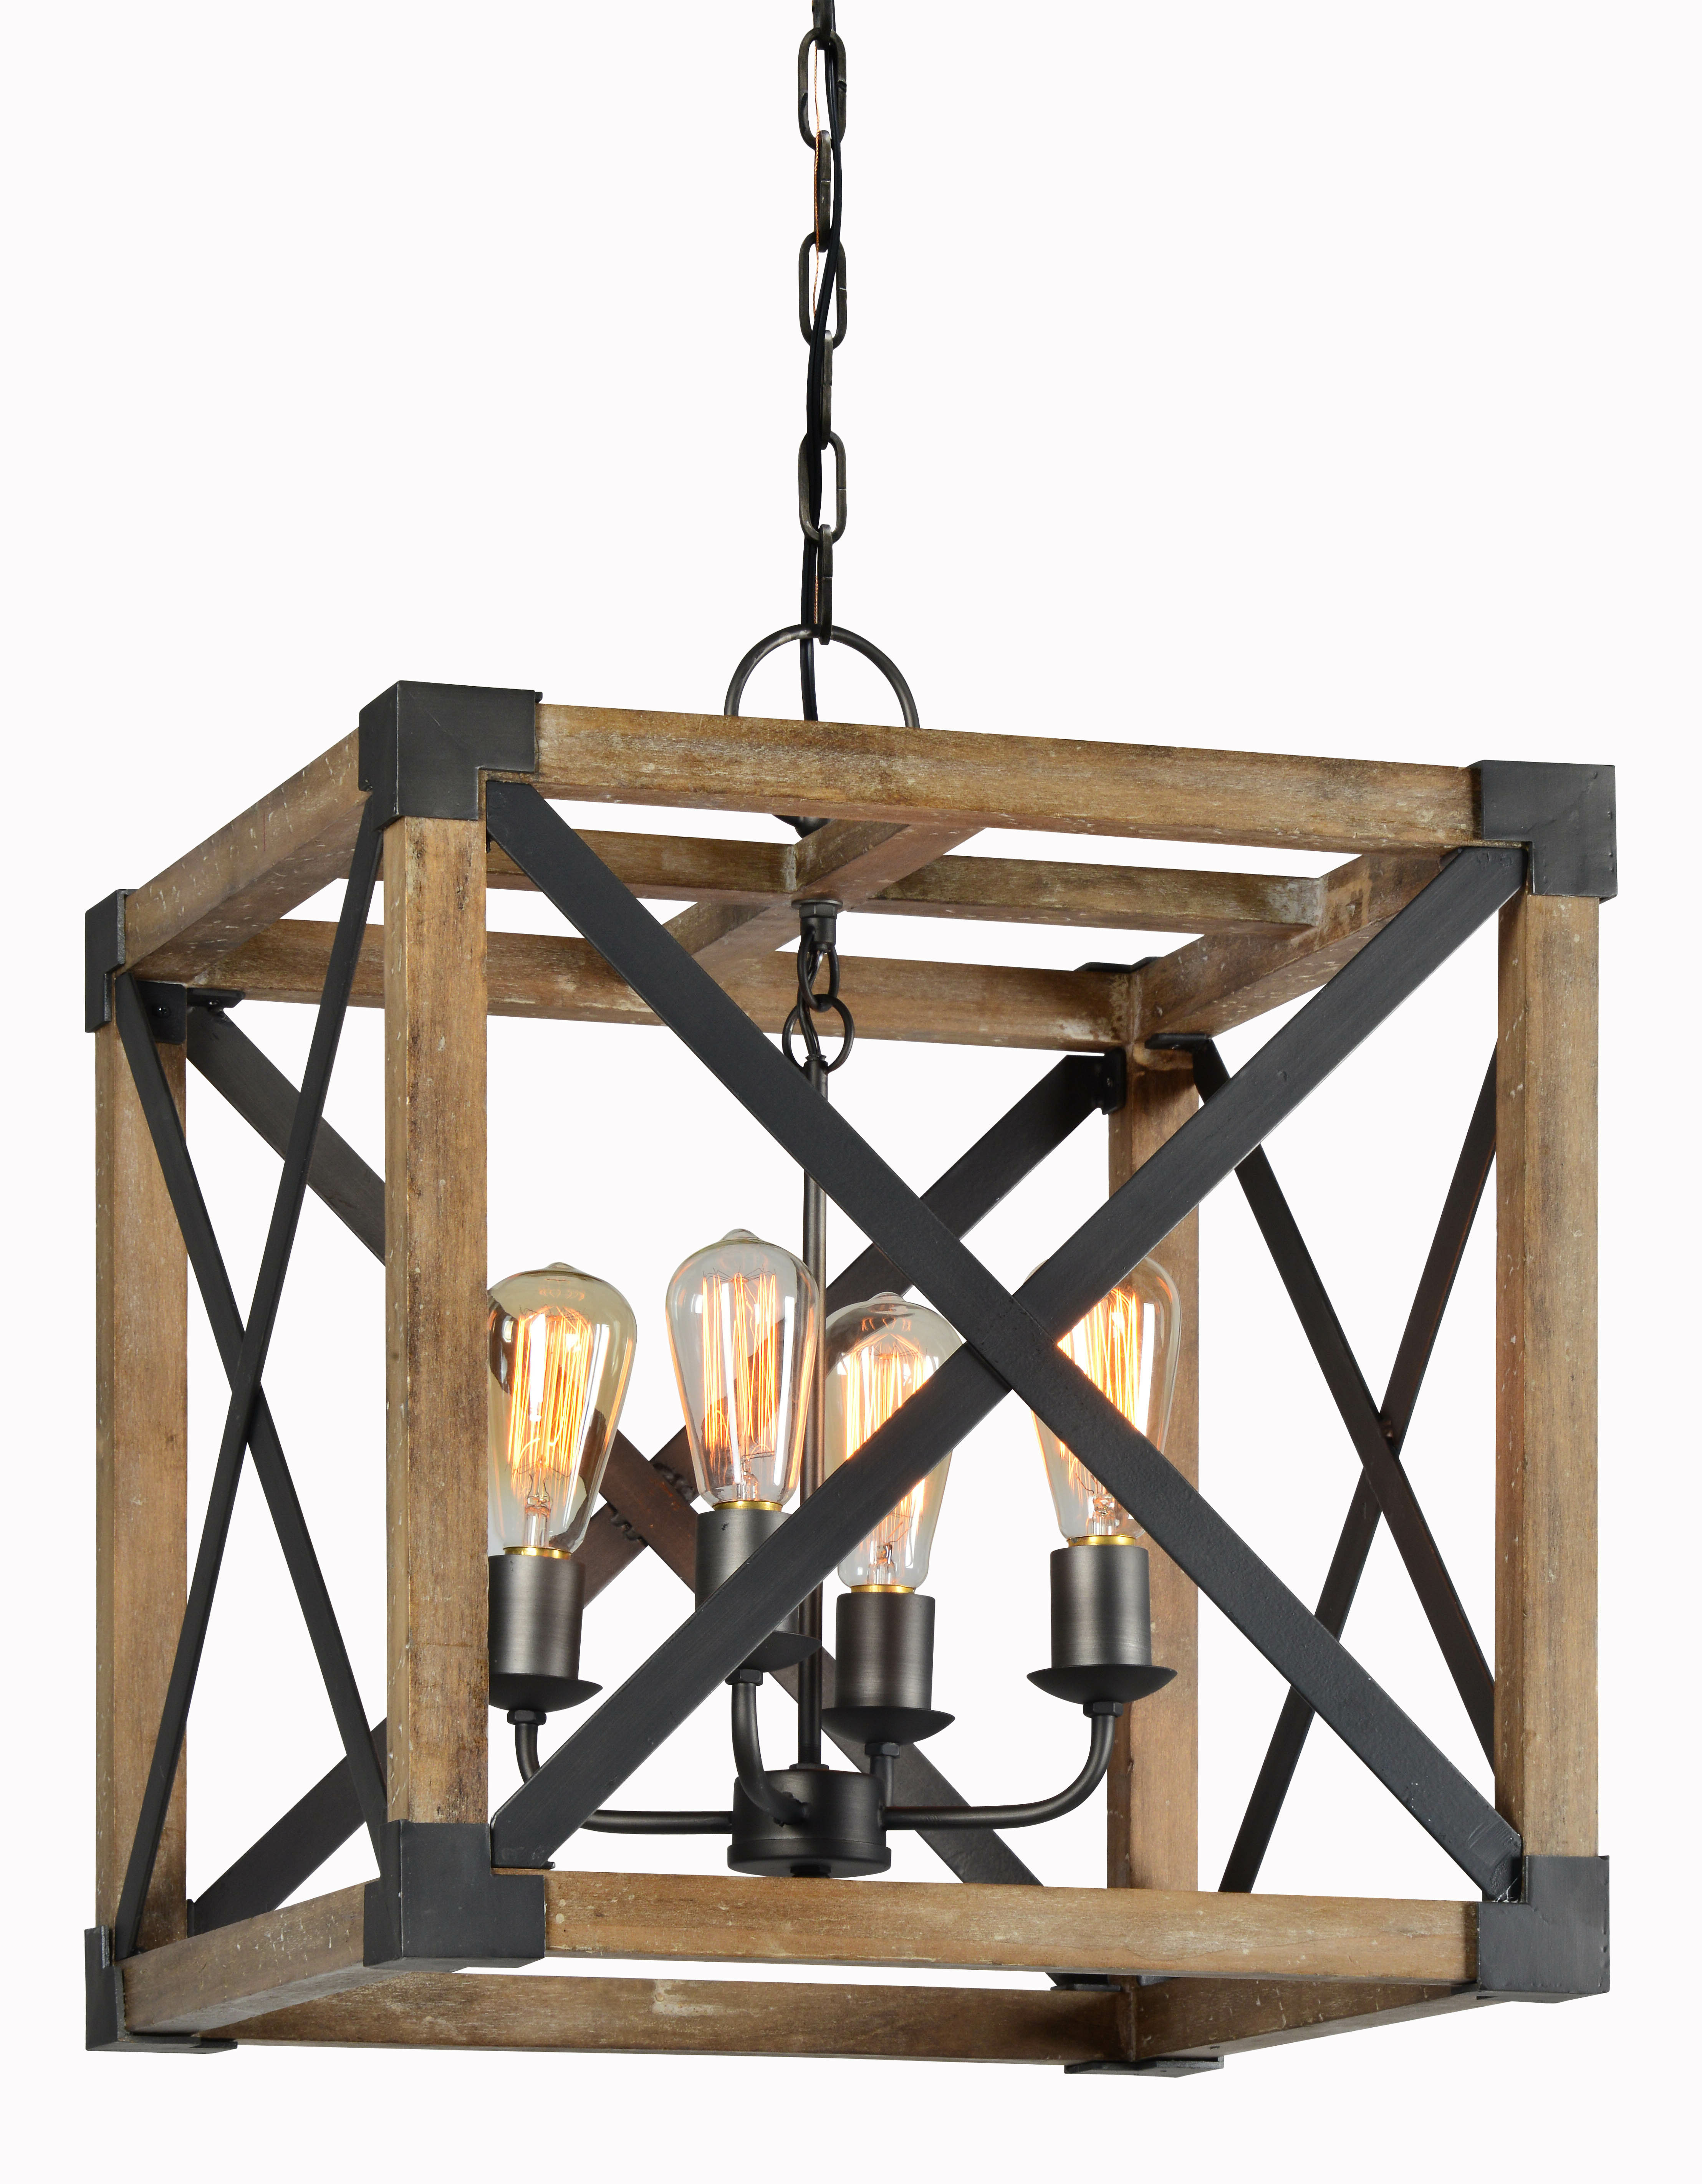 Preferred Surrett 4 Light Lantern Pendant With Regard To William 4 Light Lantern Square / Rectangle Pendants (View 7 of 20)